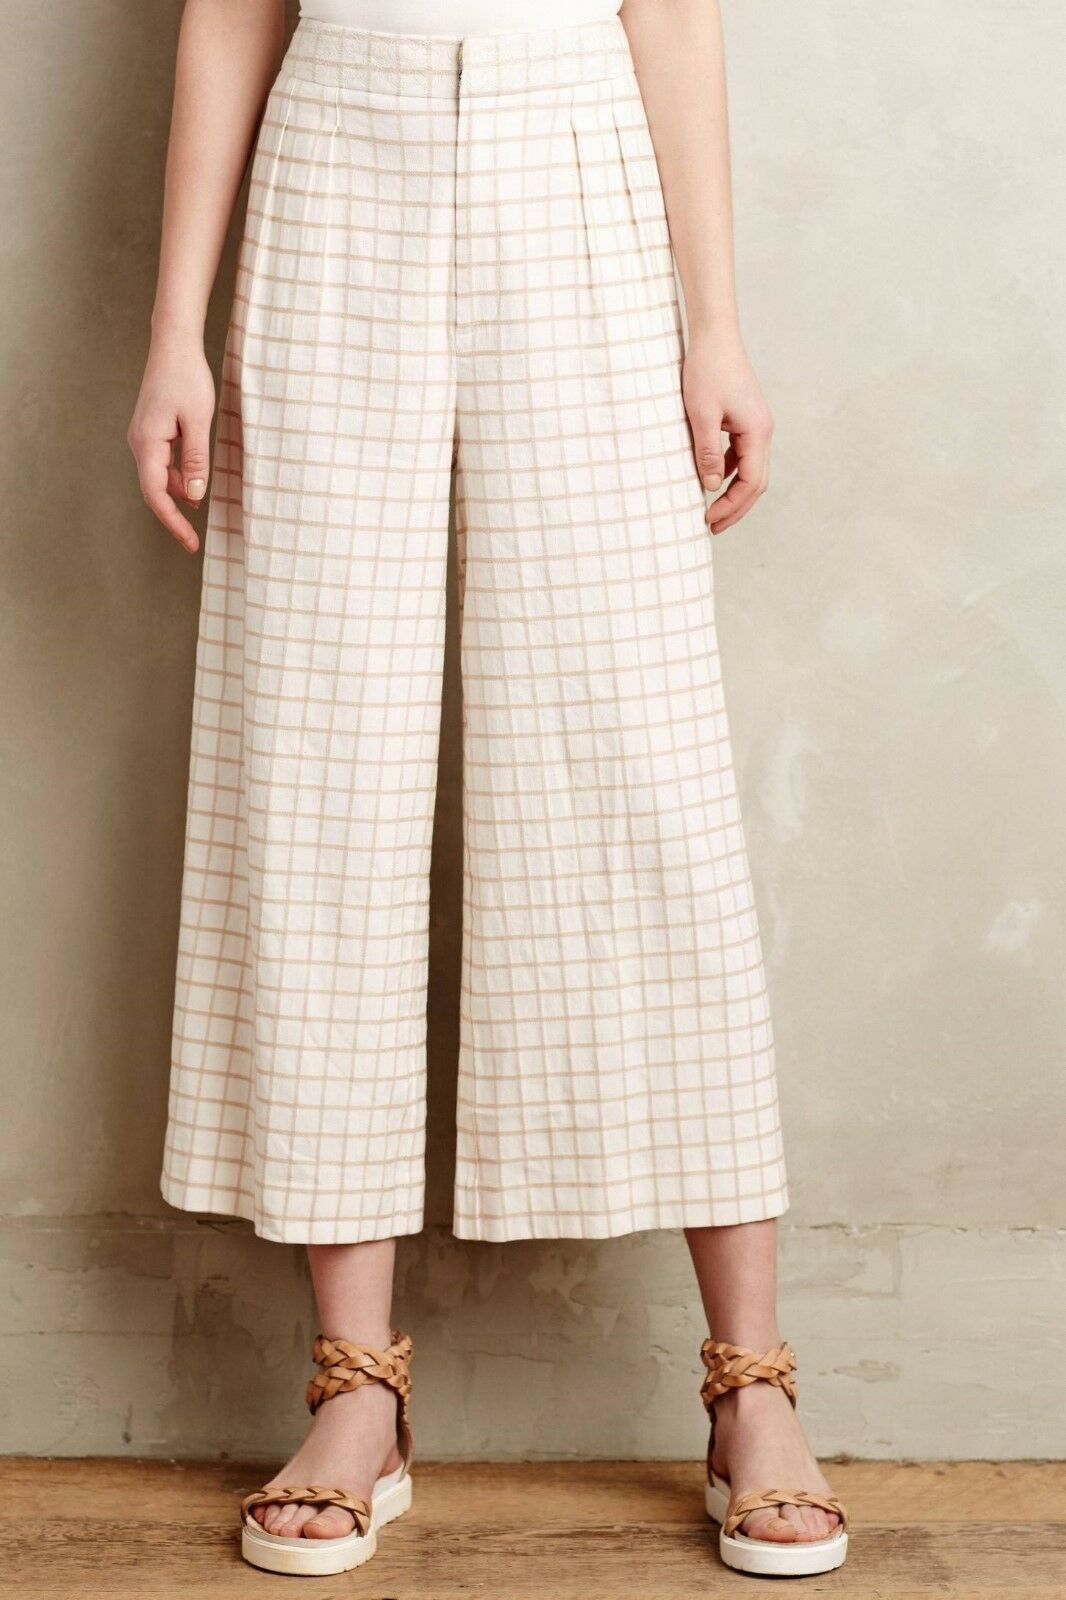 NEW Anthropologie Windowpane Culottes Cropped Wide-Legs by Elevenses Sz 0, 4, 6